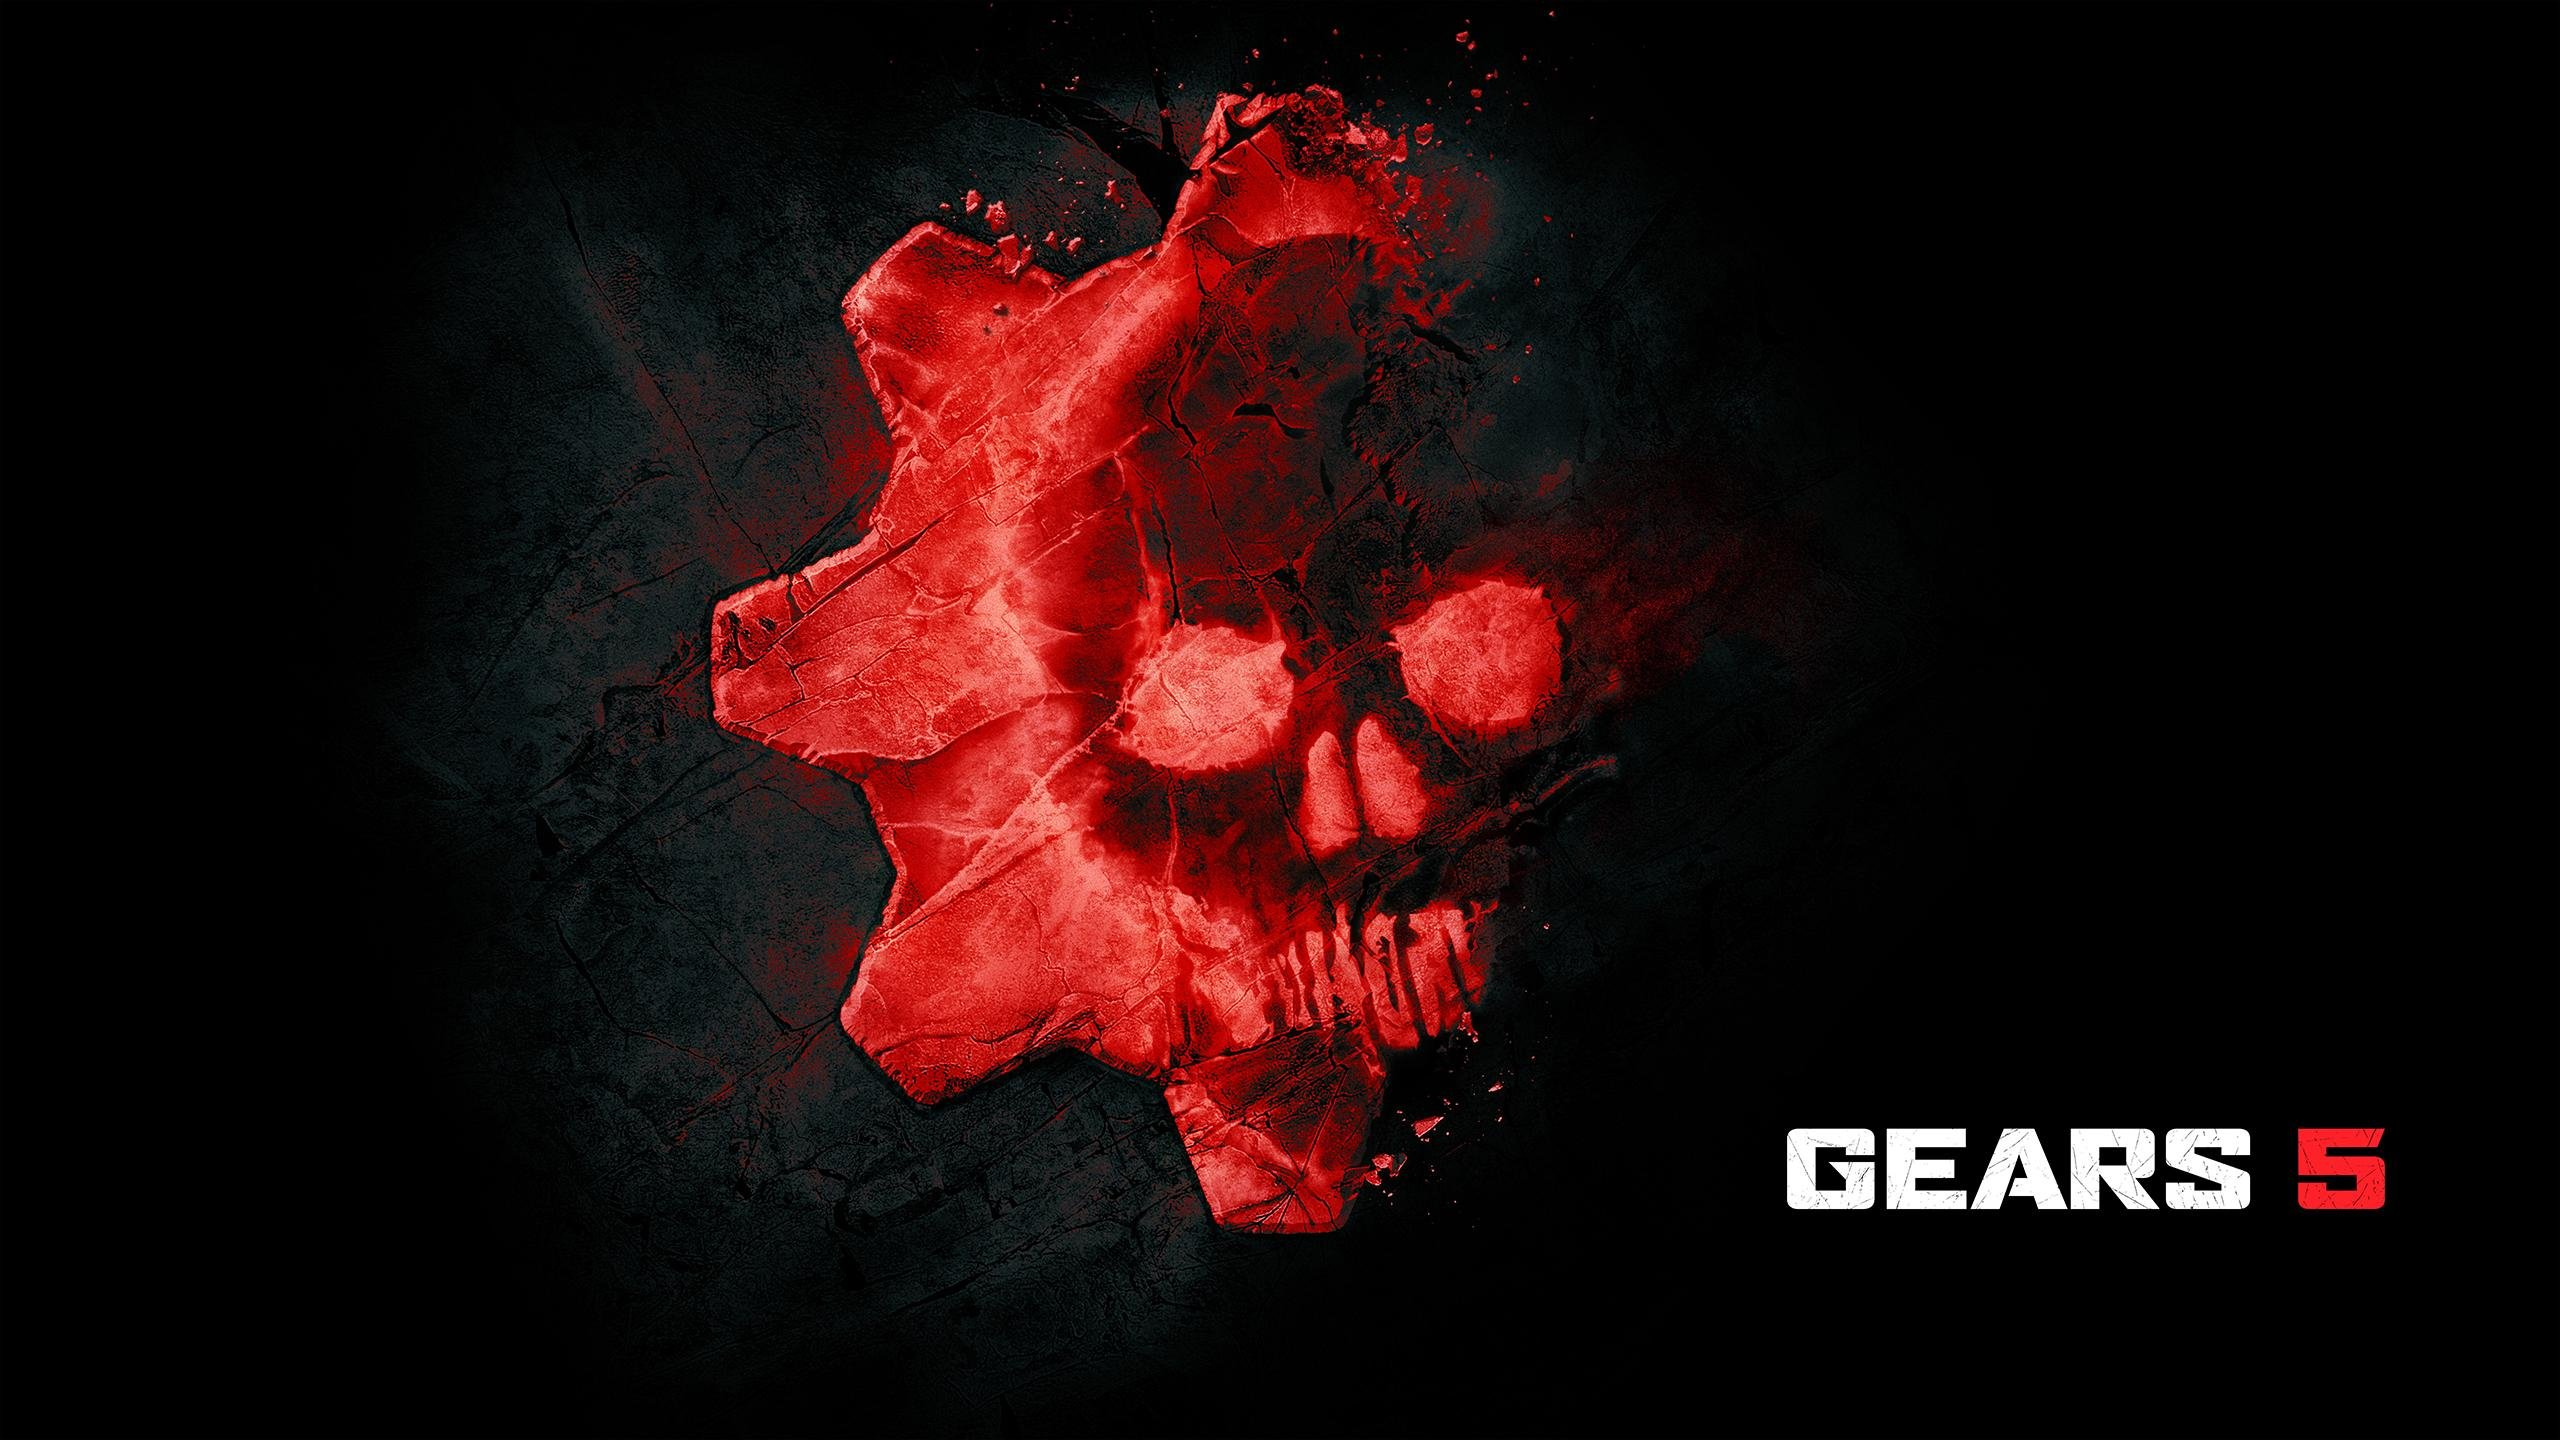 Gears 4k Wallpapers For Your Desktop Or Mobile Screen Free And